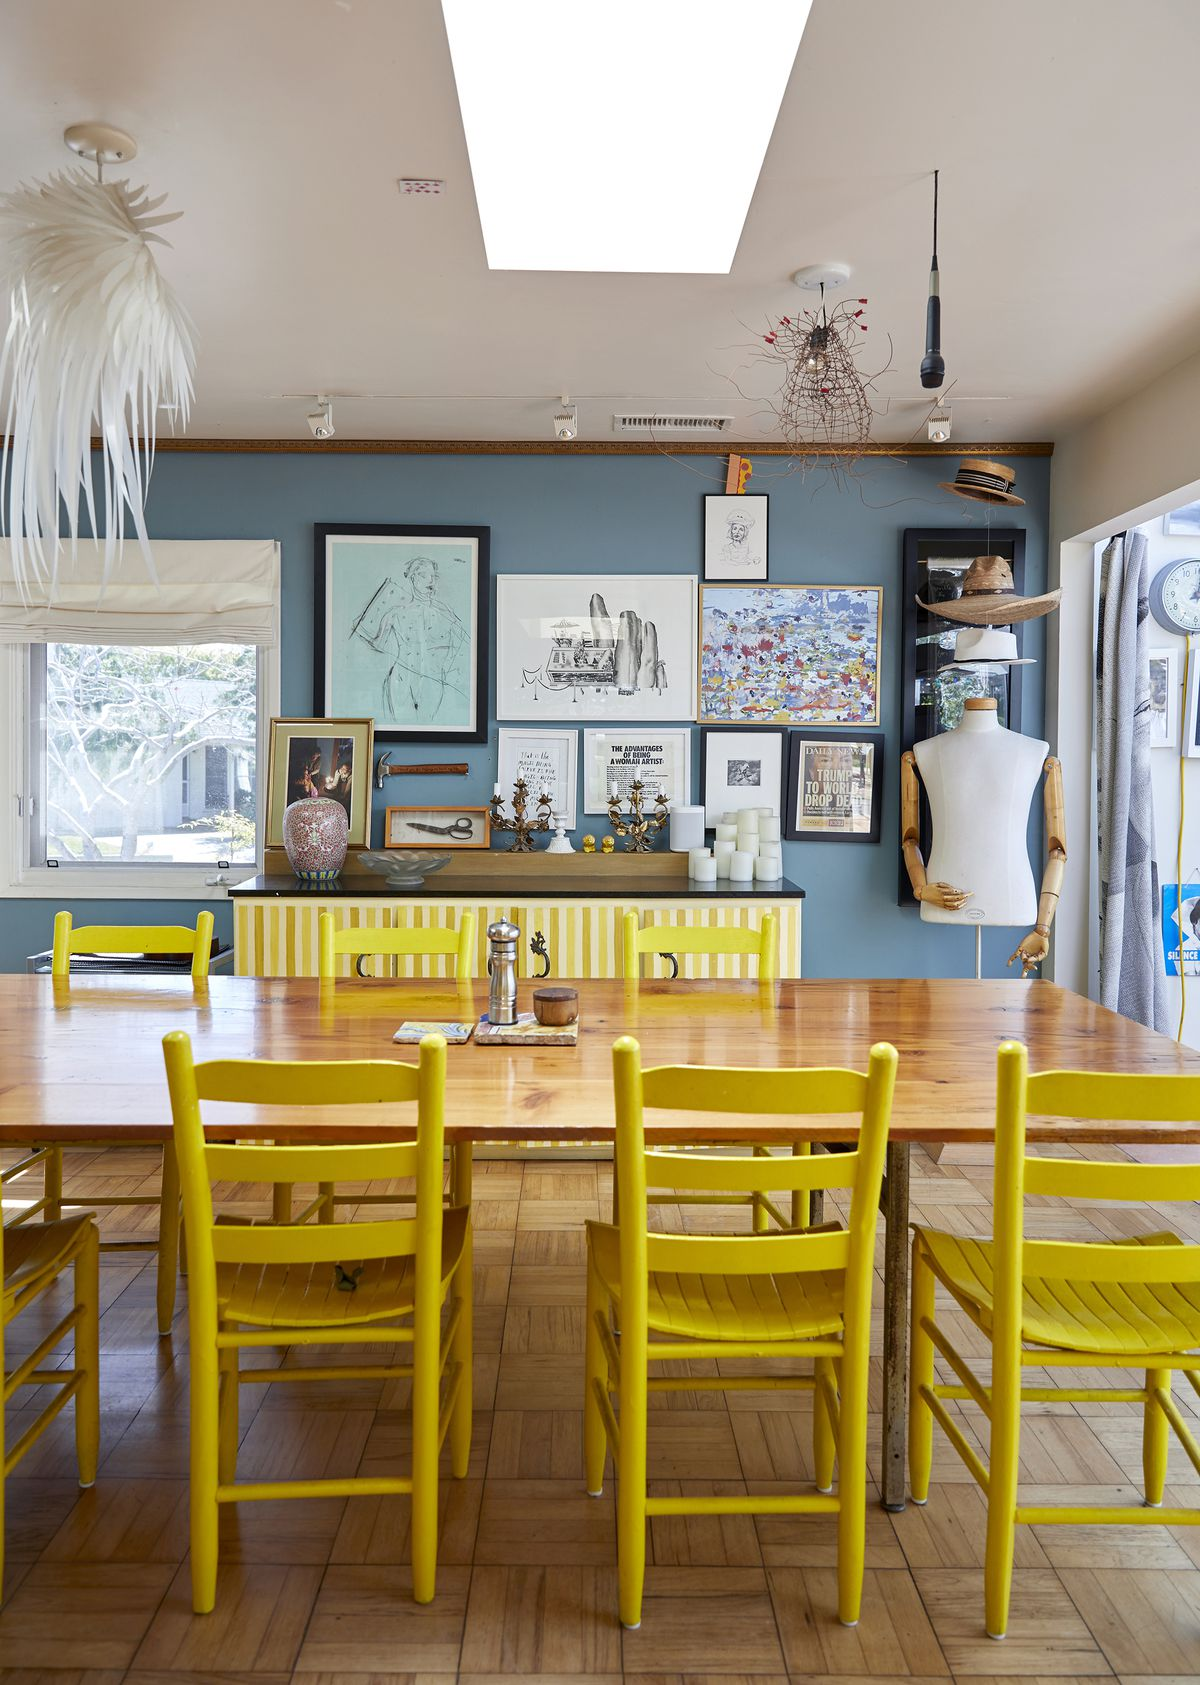 In the foreground is a wooden table with multiple yellow painted chairs. In the distance is a blue painted wall with many framed works of art. Light fixtures and art hang from the ceiling.